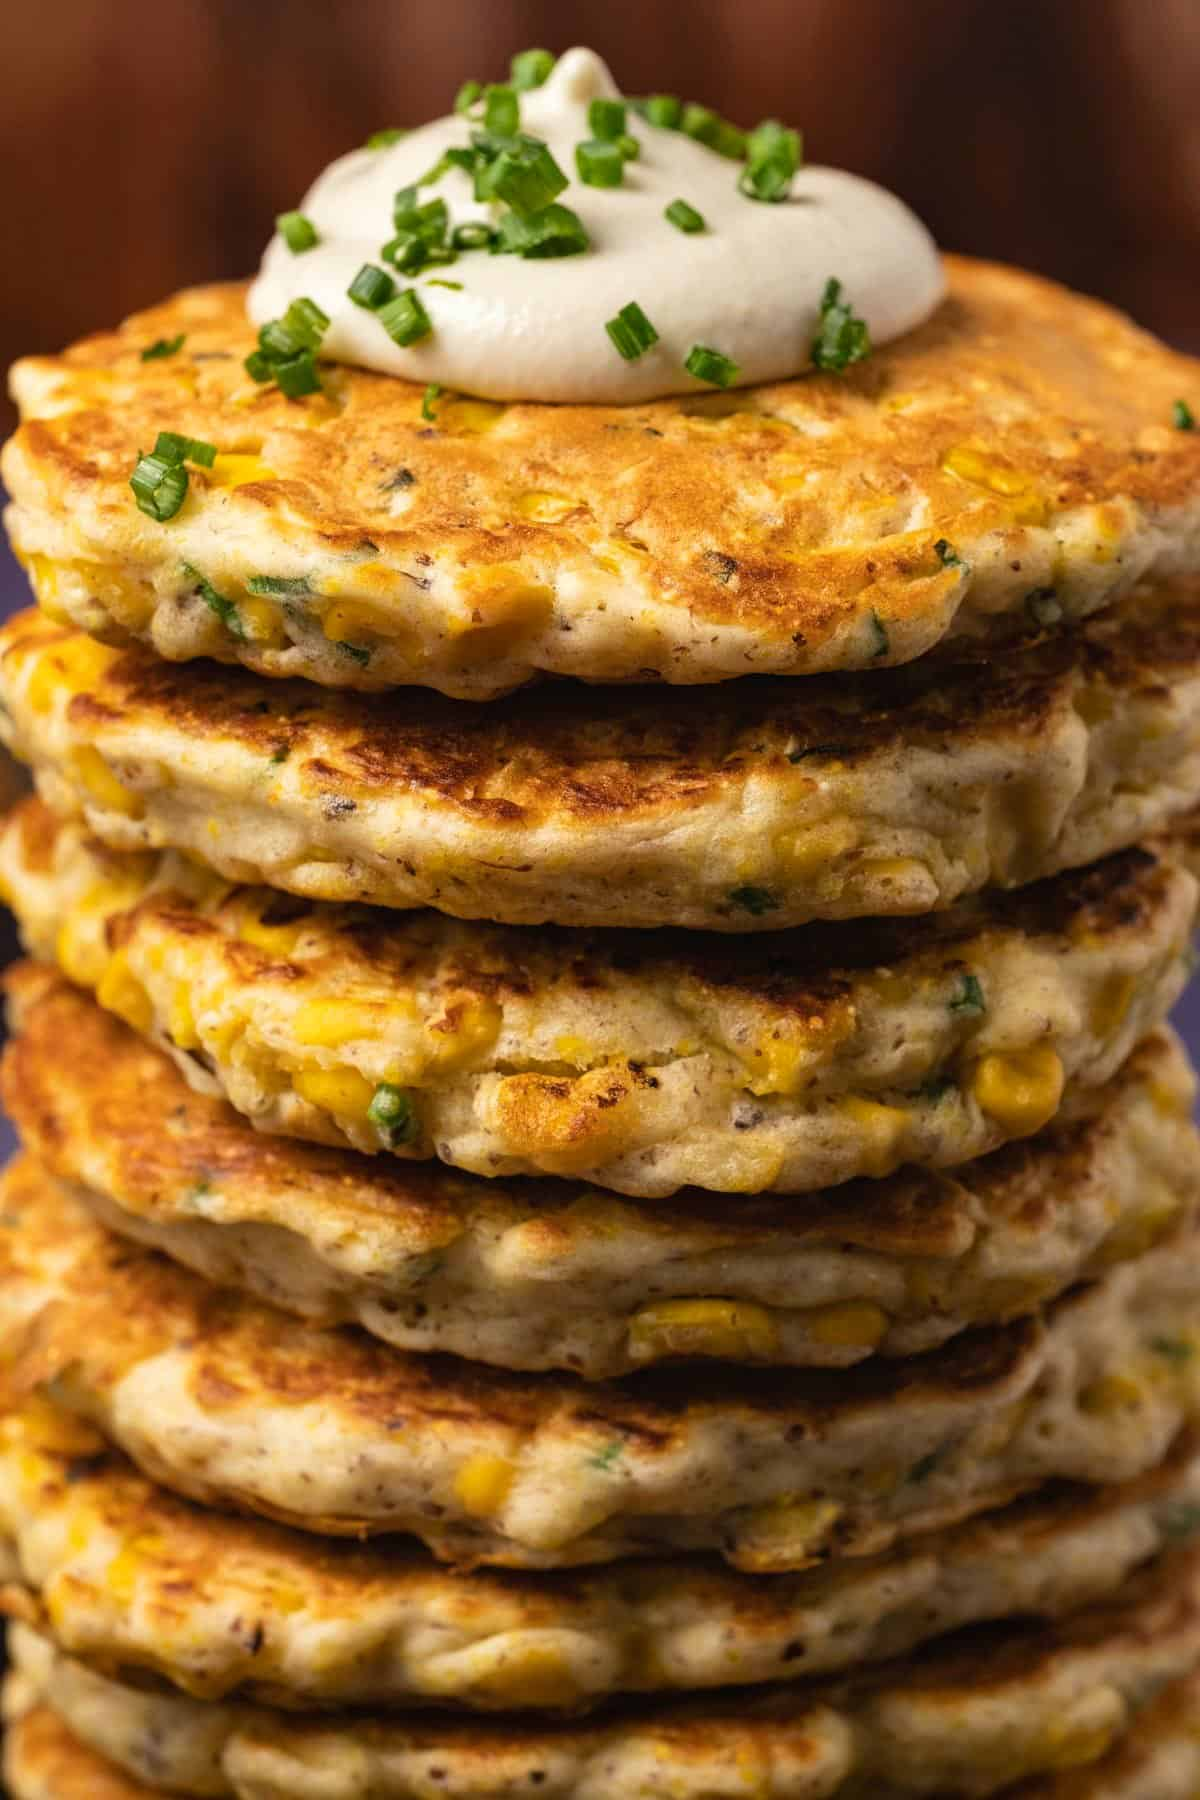 Stack of vegan corn fritters topped with sour cream and chopped chives.